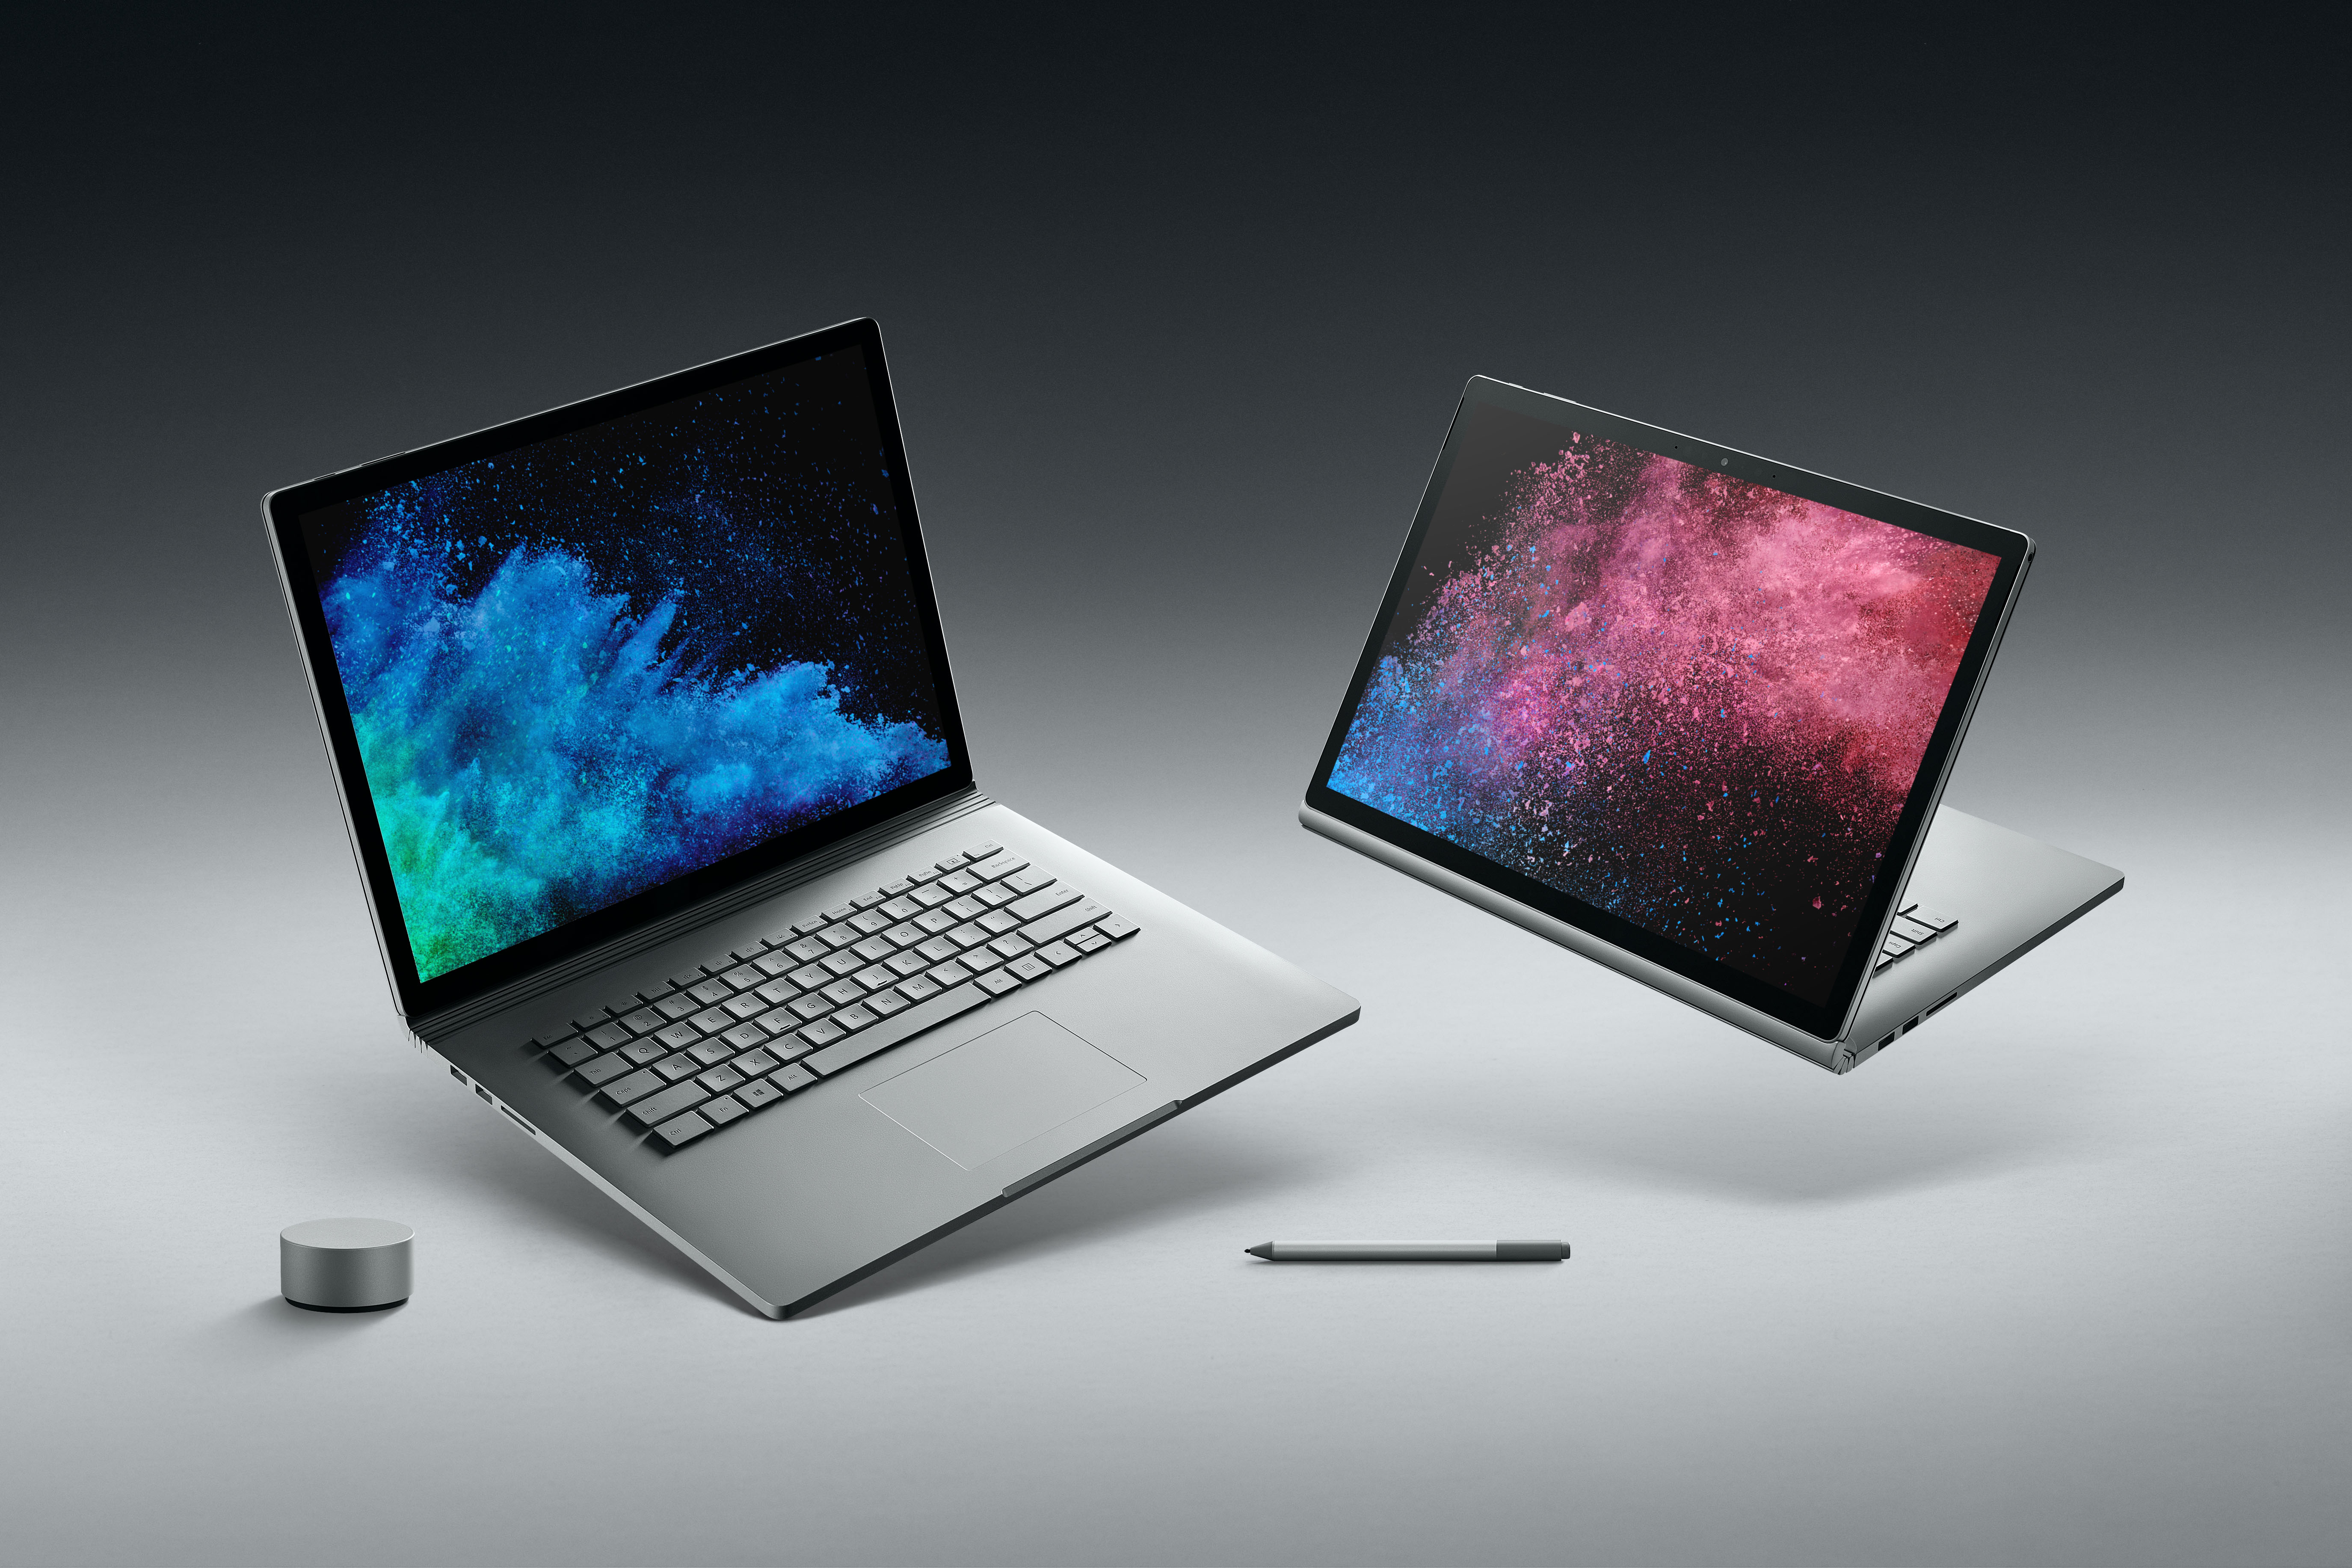 Microsoft Brings Surface Book 2 to Europe